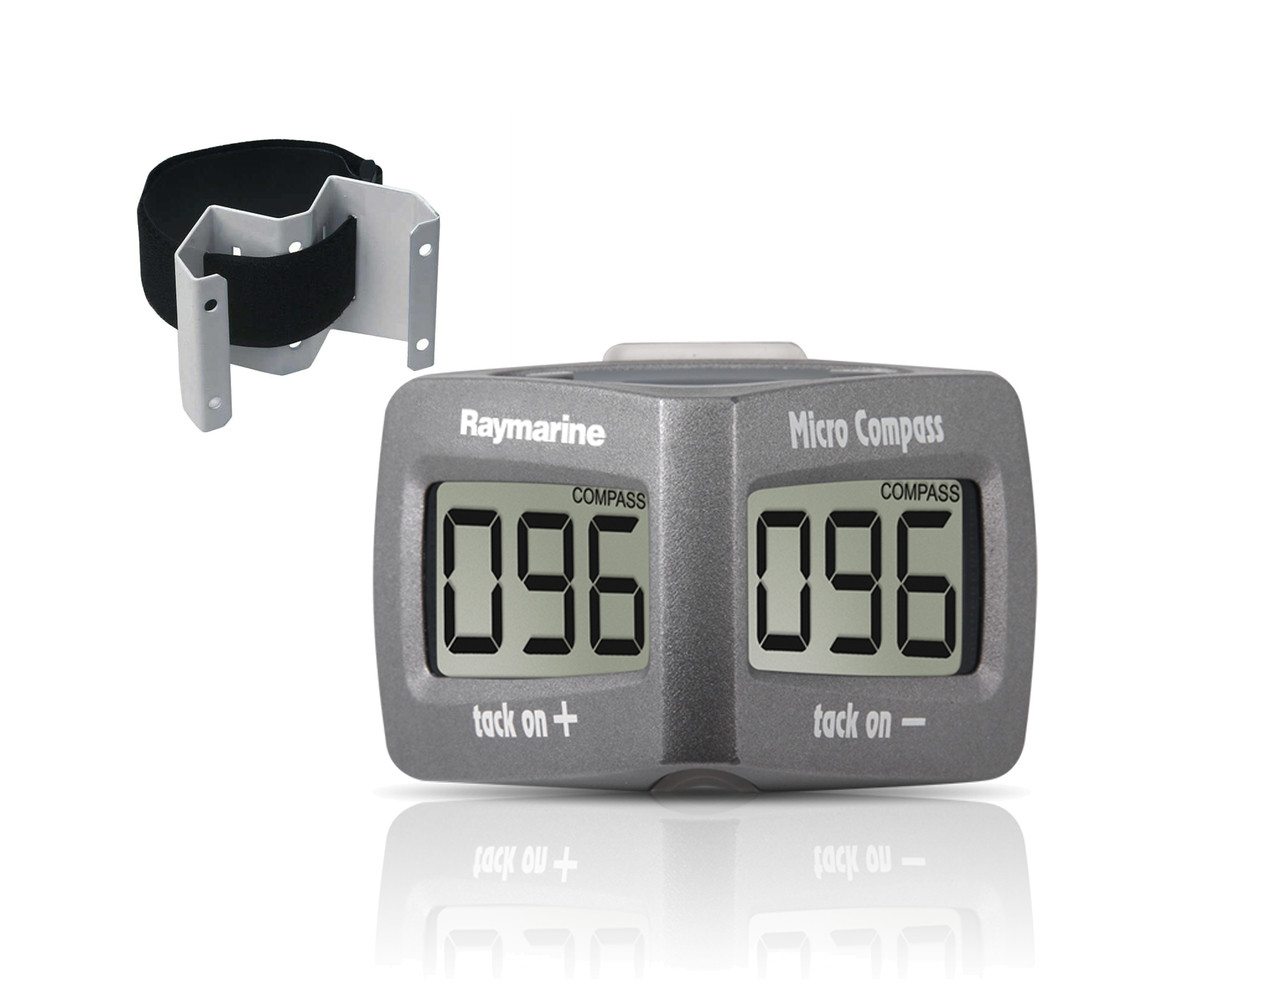 Raymarine Micro Compass System with Strap Bracket